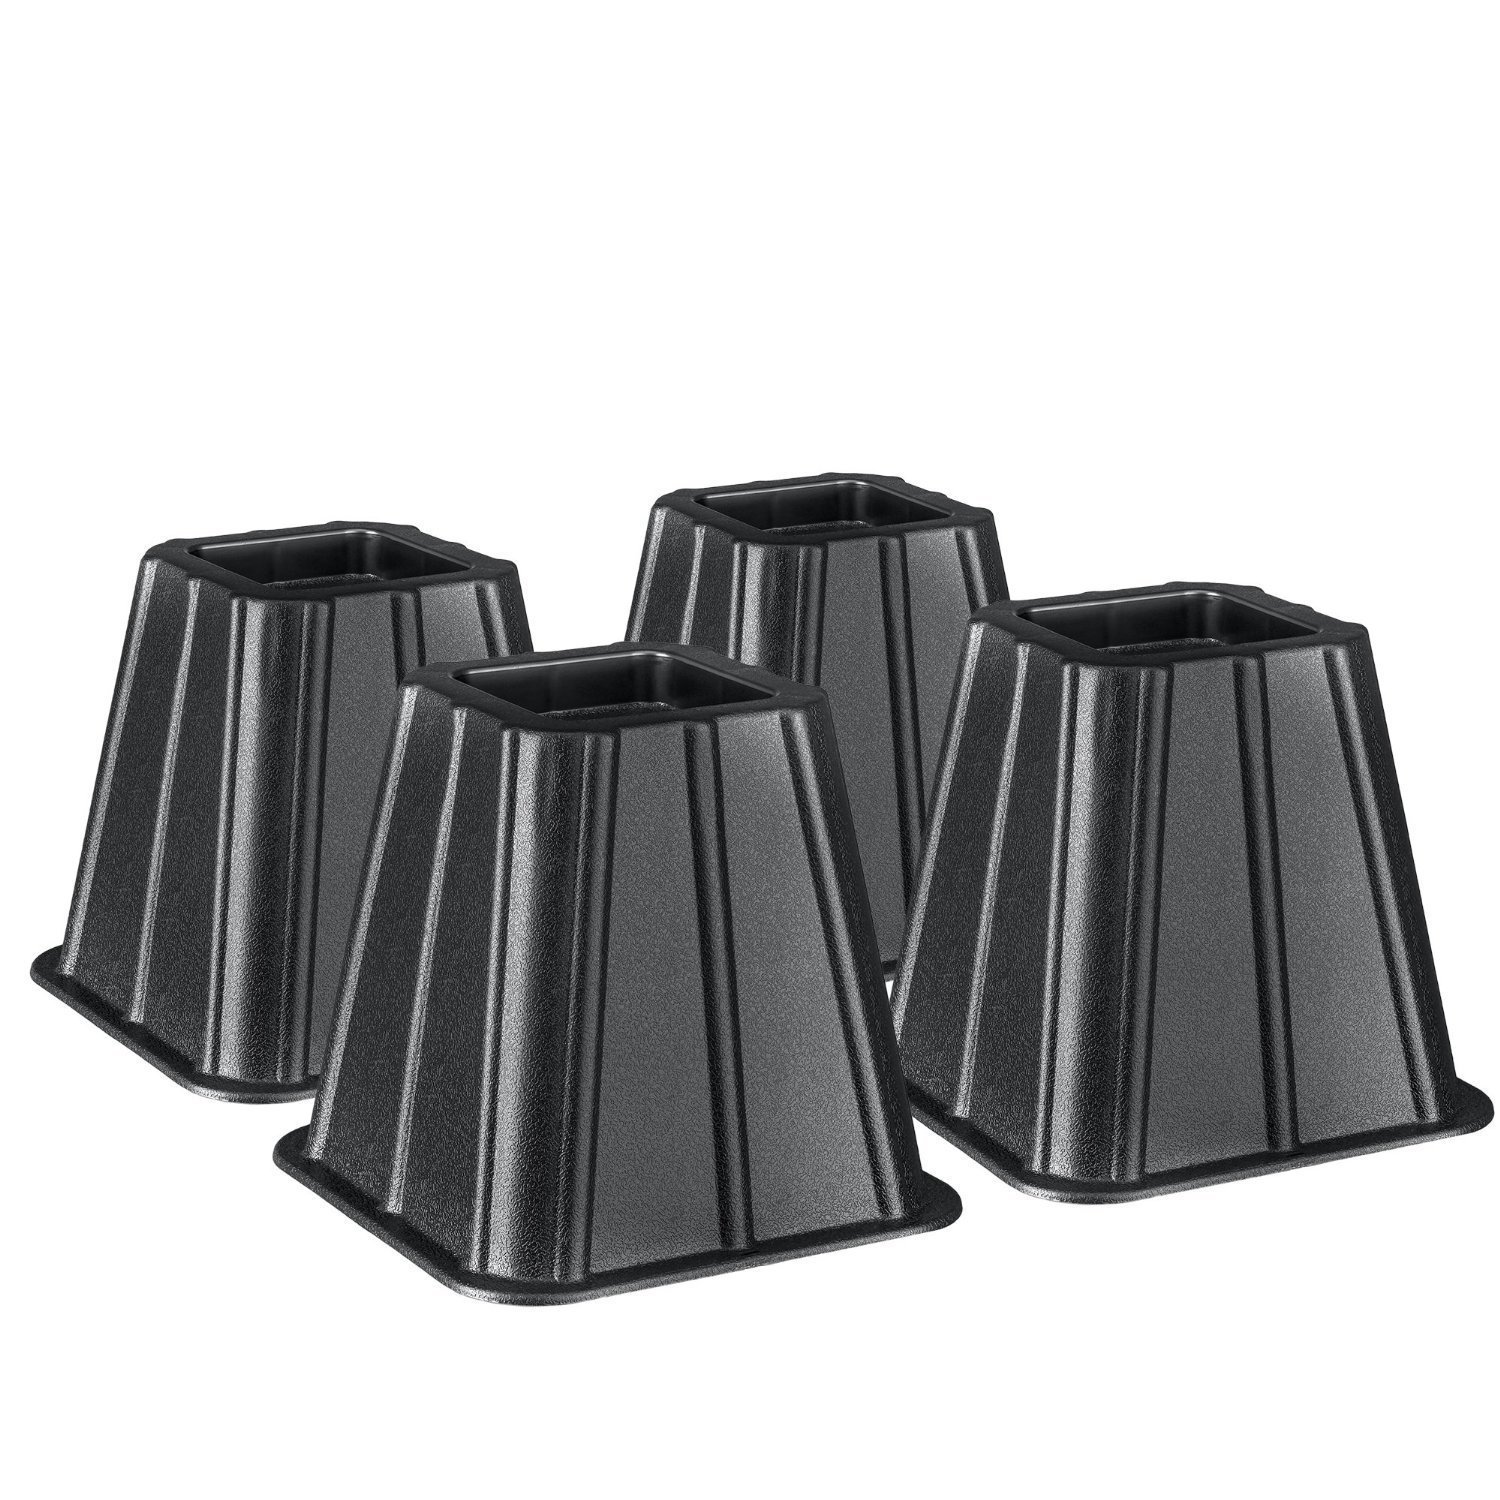 Set of 4 Bed Risers Raise Furniture Create Underbed Storage